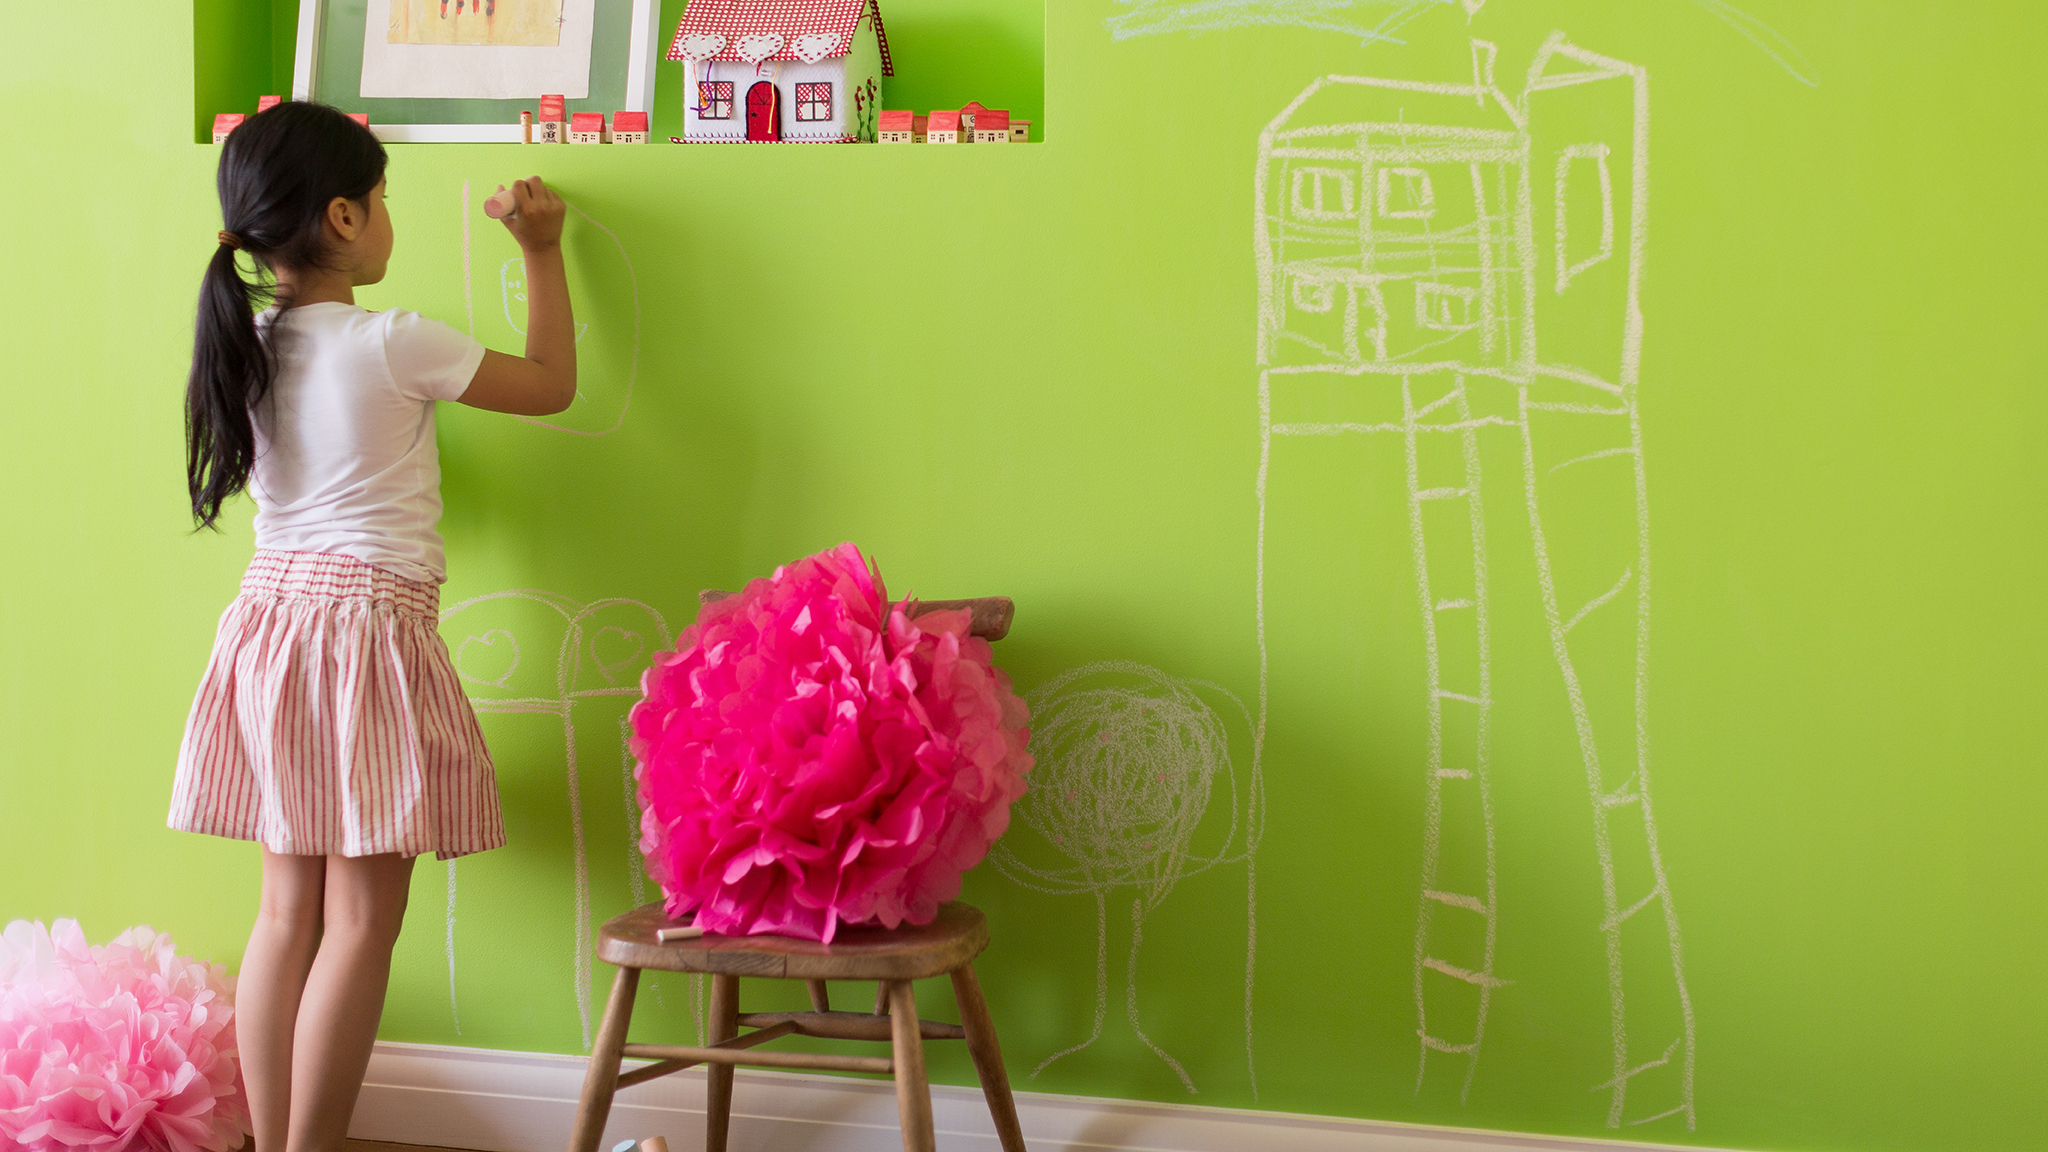 Easy clean paint for children's rooms